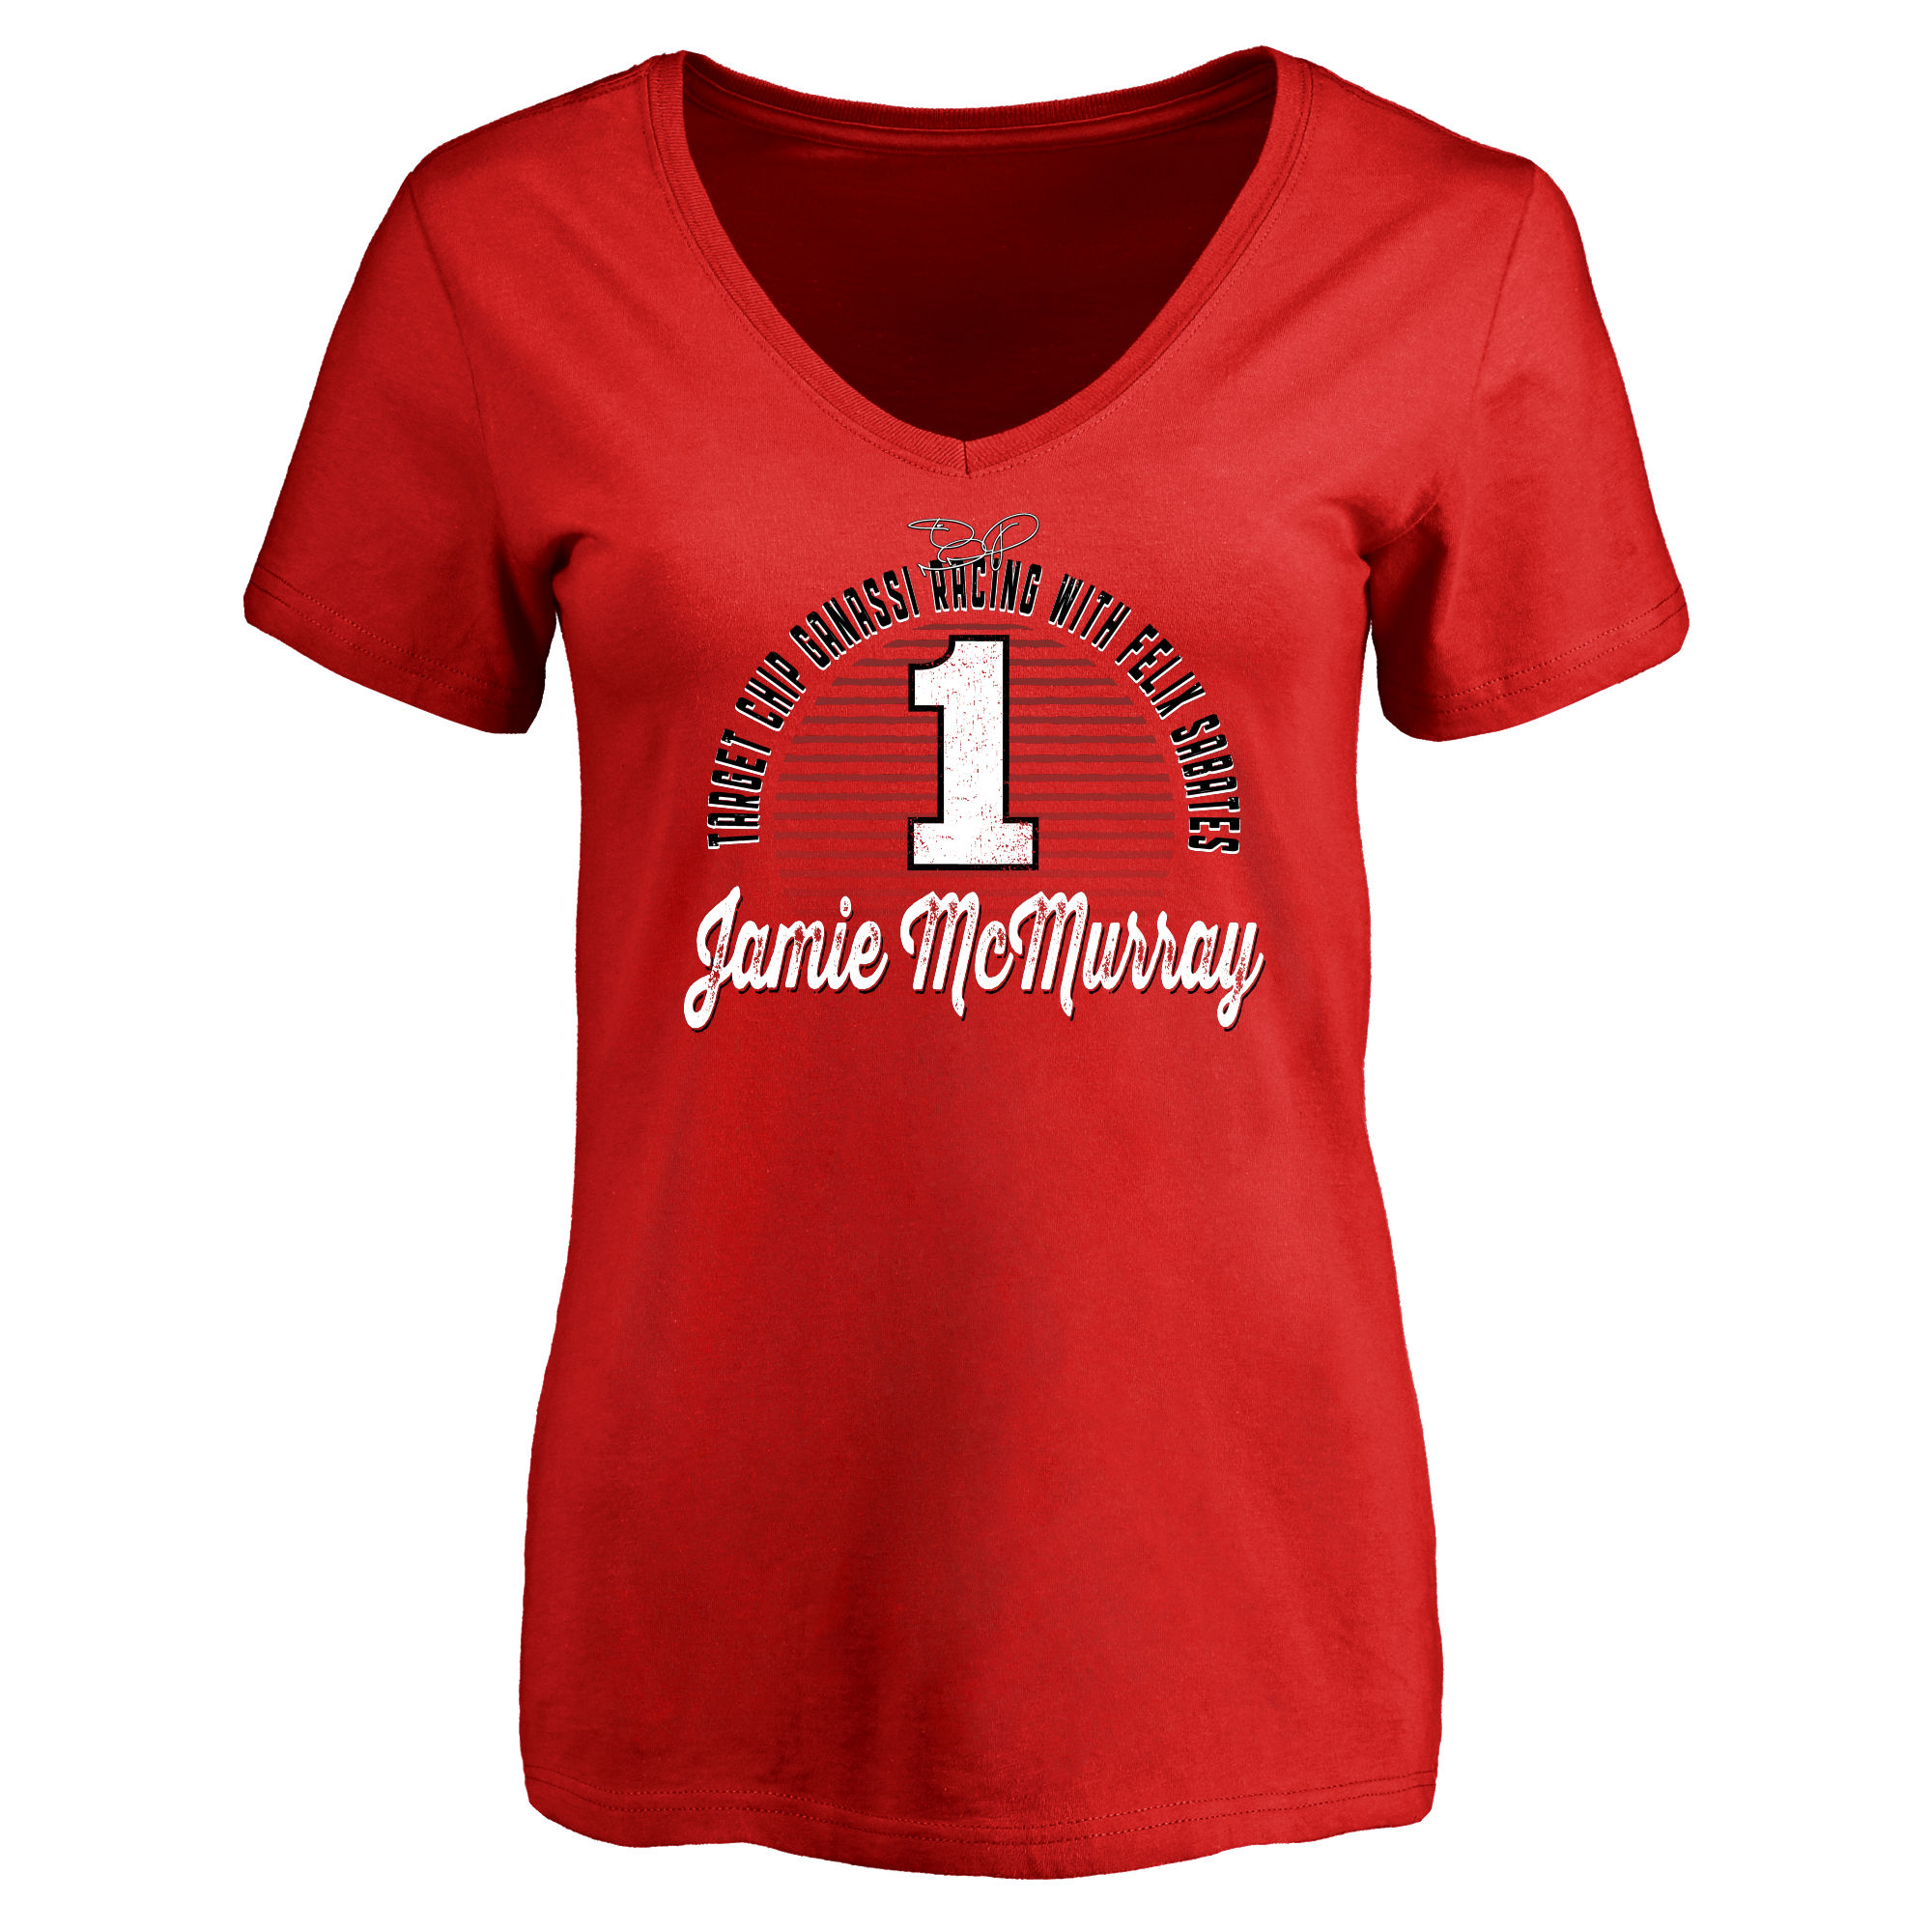 Jamie McMurray Women's Race Day V-Neck T-Shirt - Red